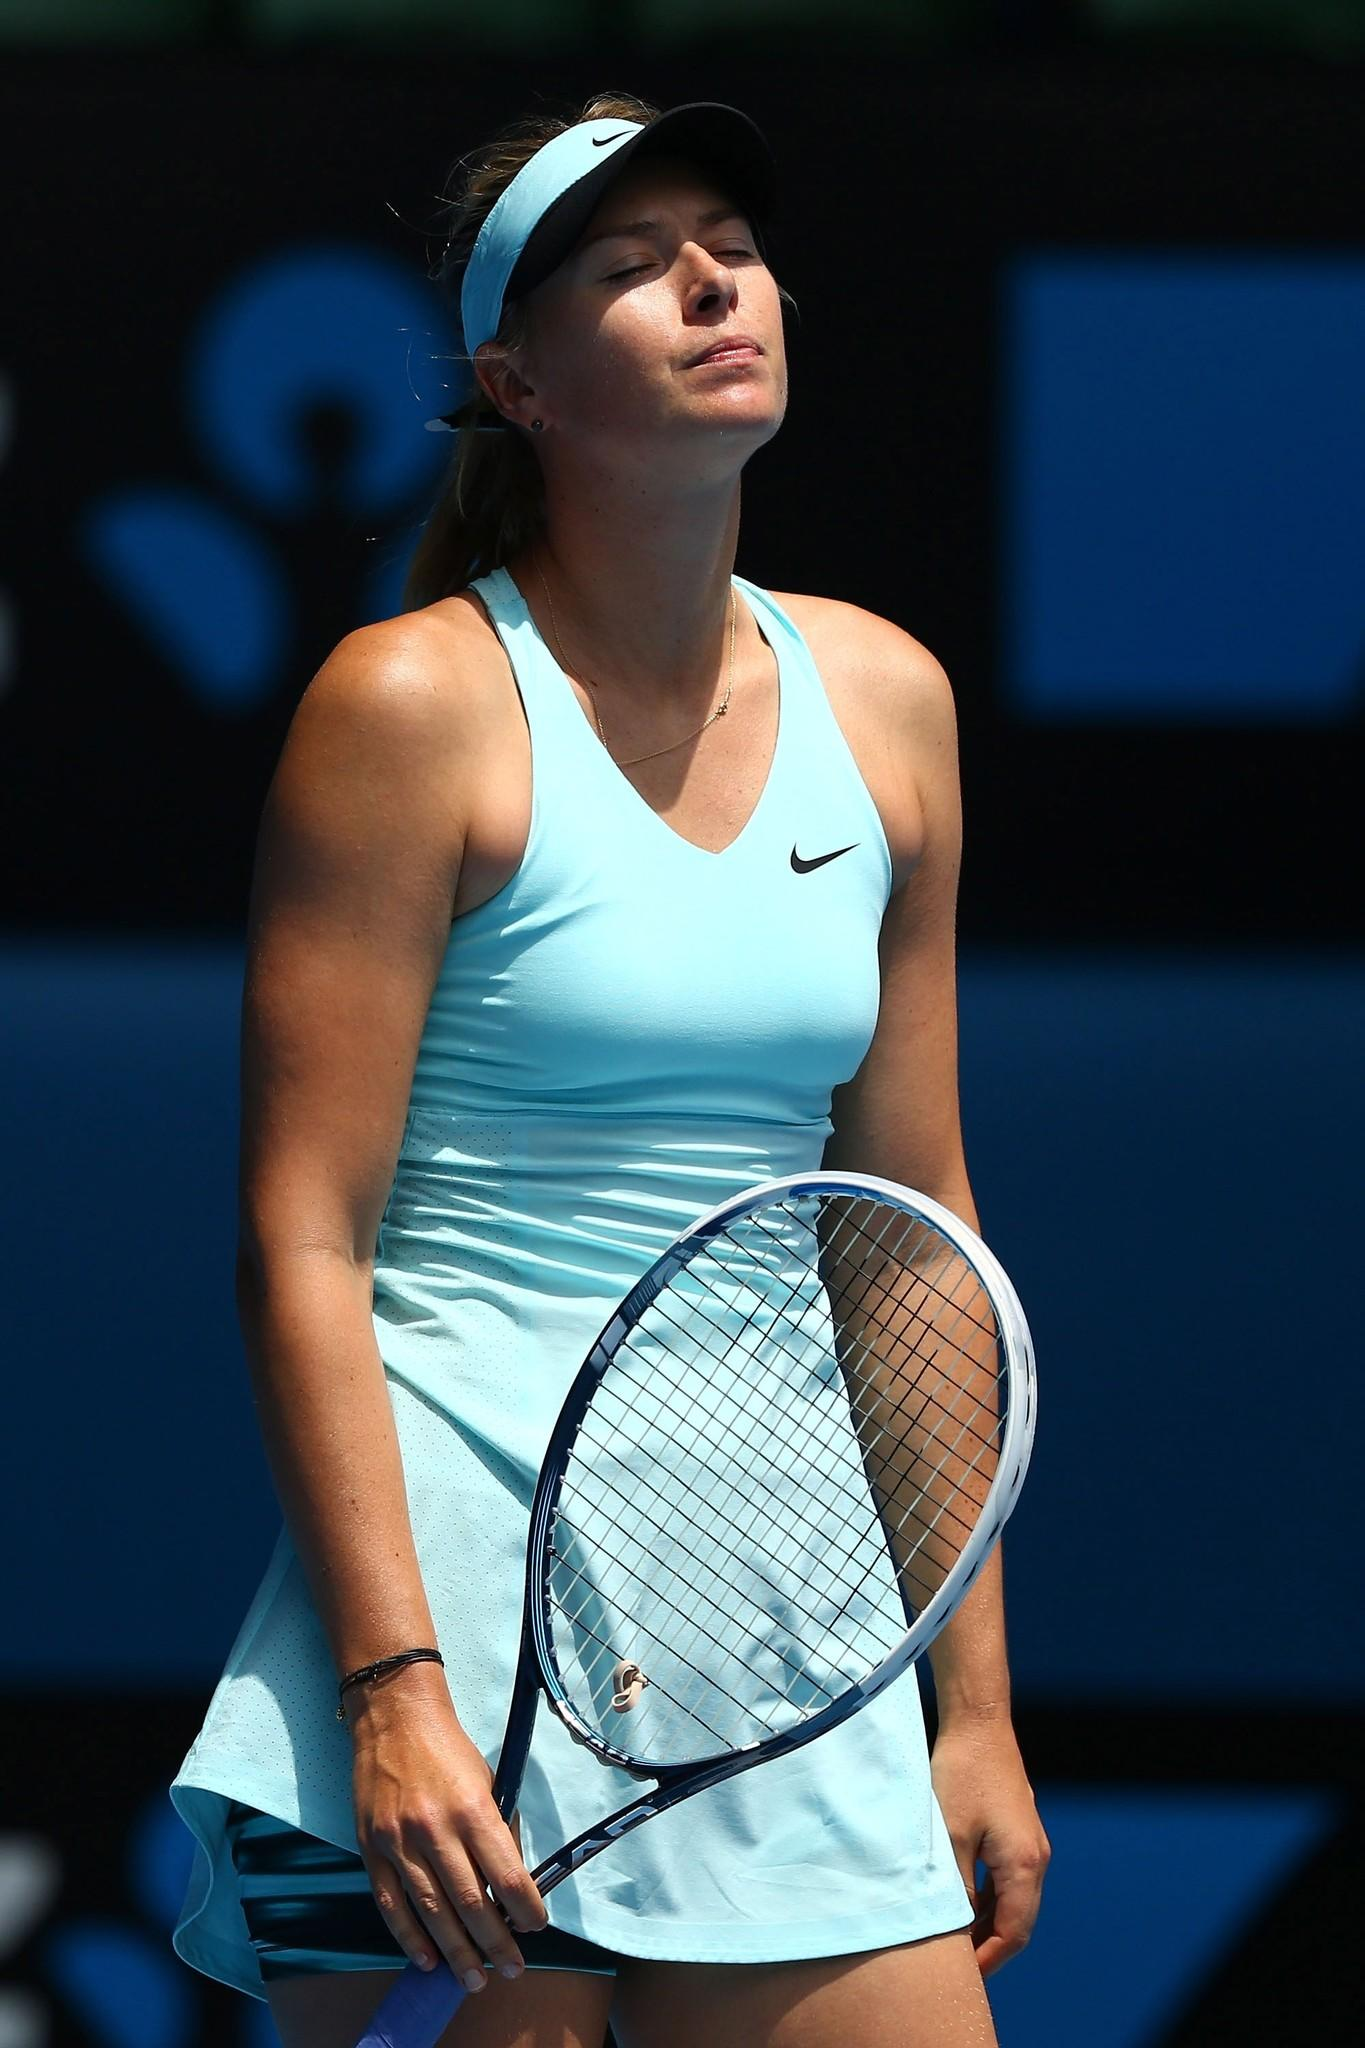 Maria Sharapova of Russia reacts to a point in her fourth round match against Dominika Cibulkova of Slovakia during day eight of the 2014 Australian Open at Melbourne Park on January 20, 2014 in Melbourne, Australia.